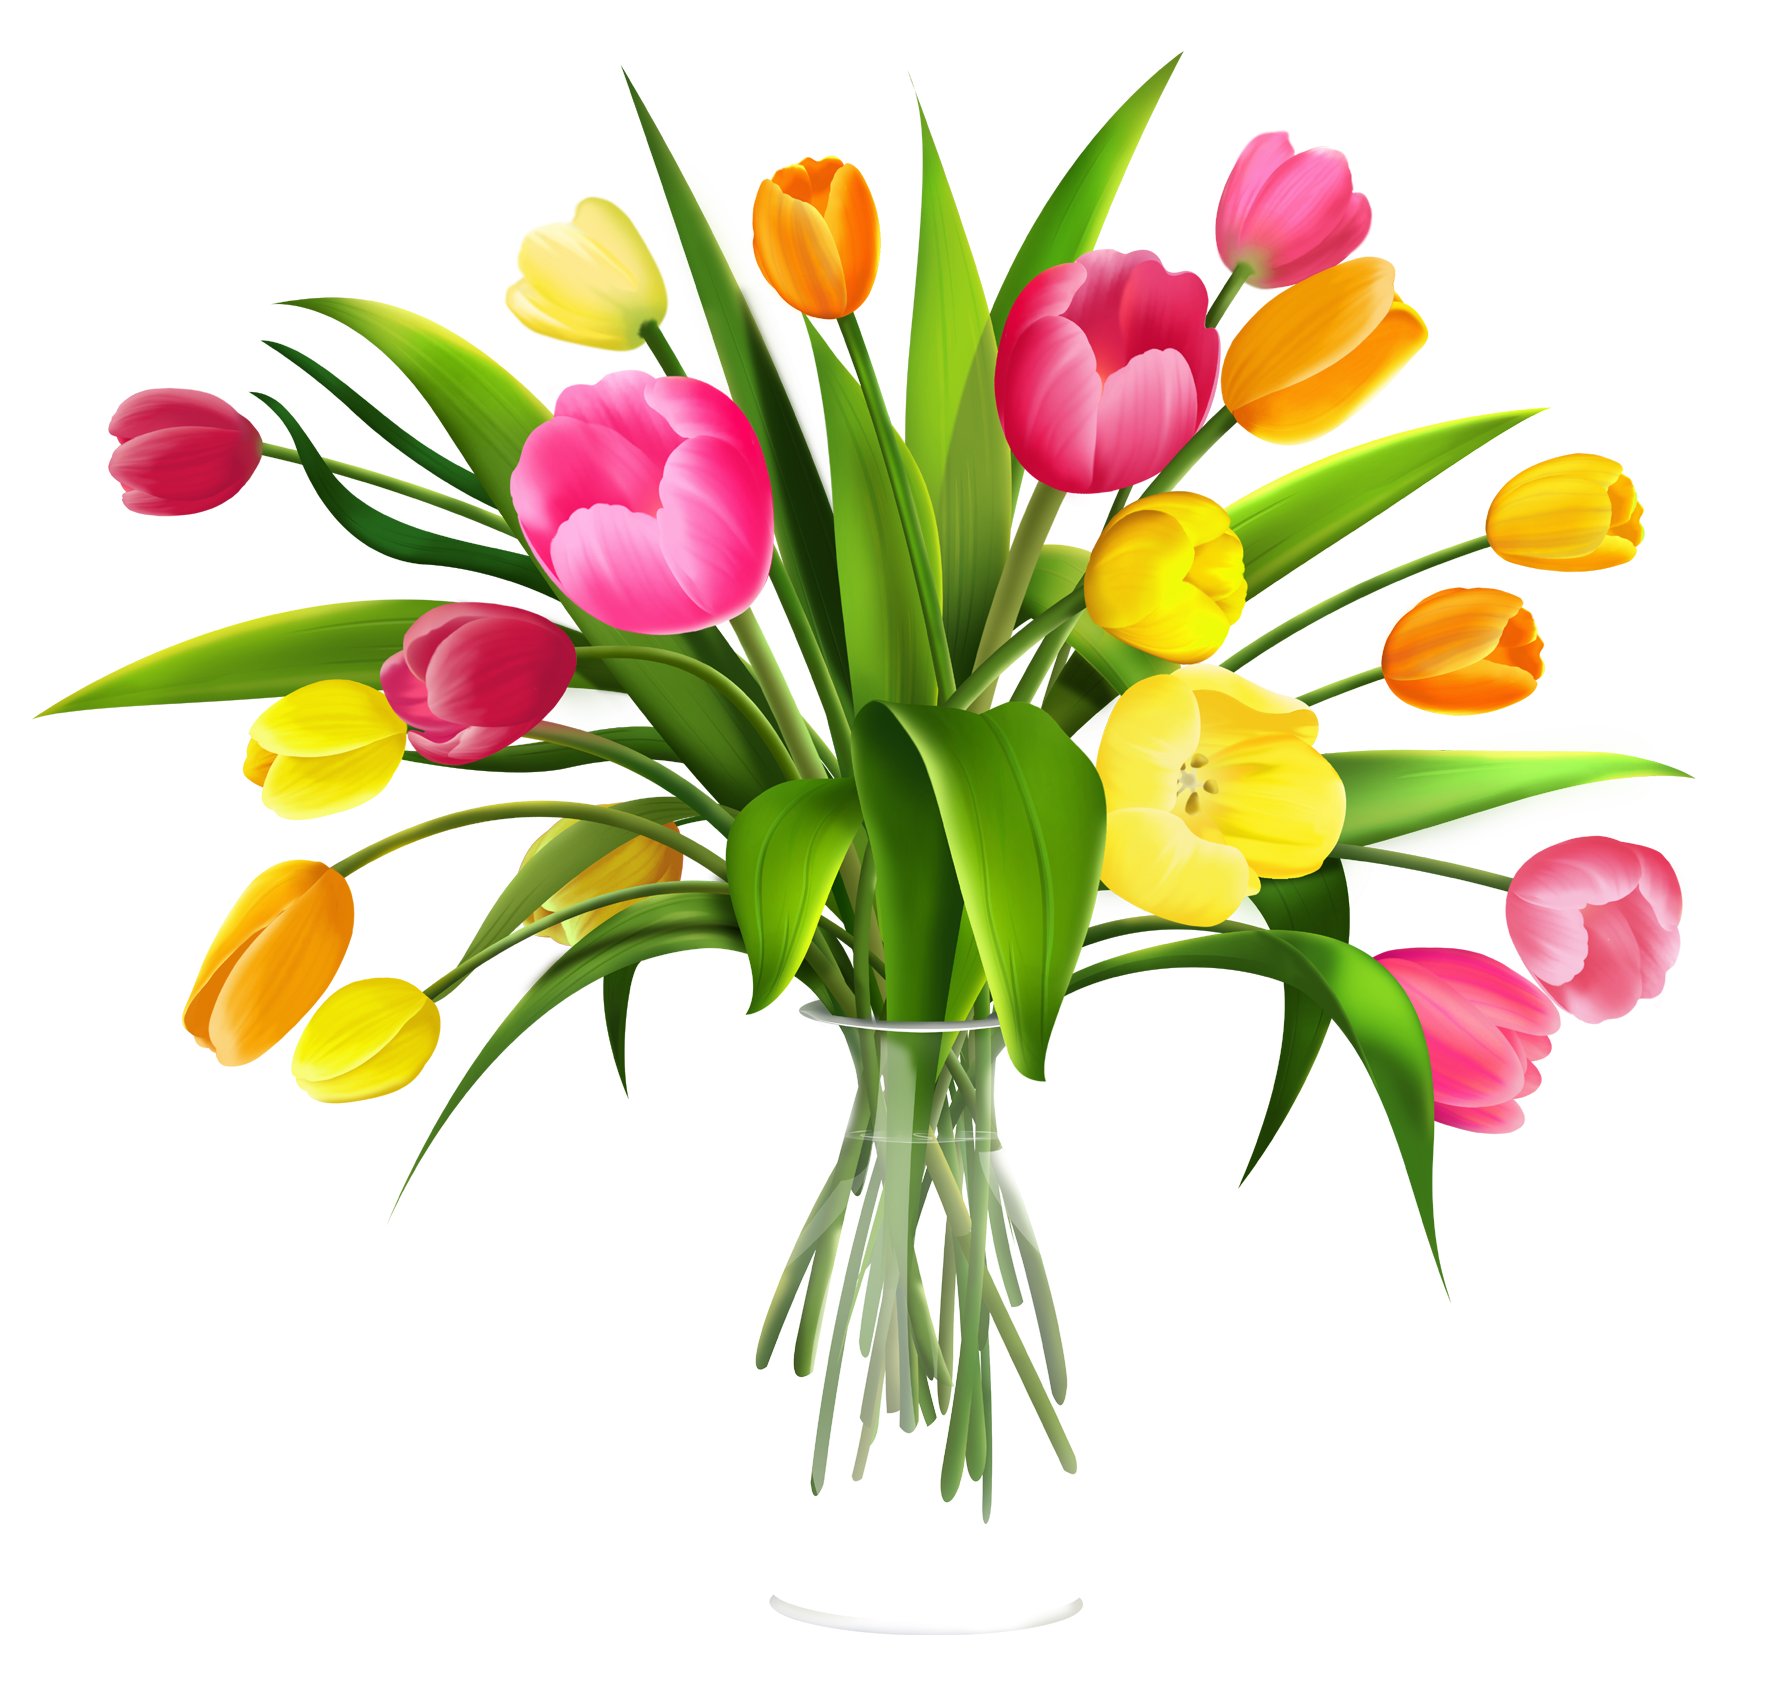 free clip art flowers in vase use these free images for your rh pinterest com bouquet of flowers clip art free bouquet of flowers clip art free